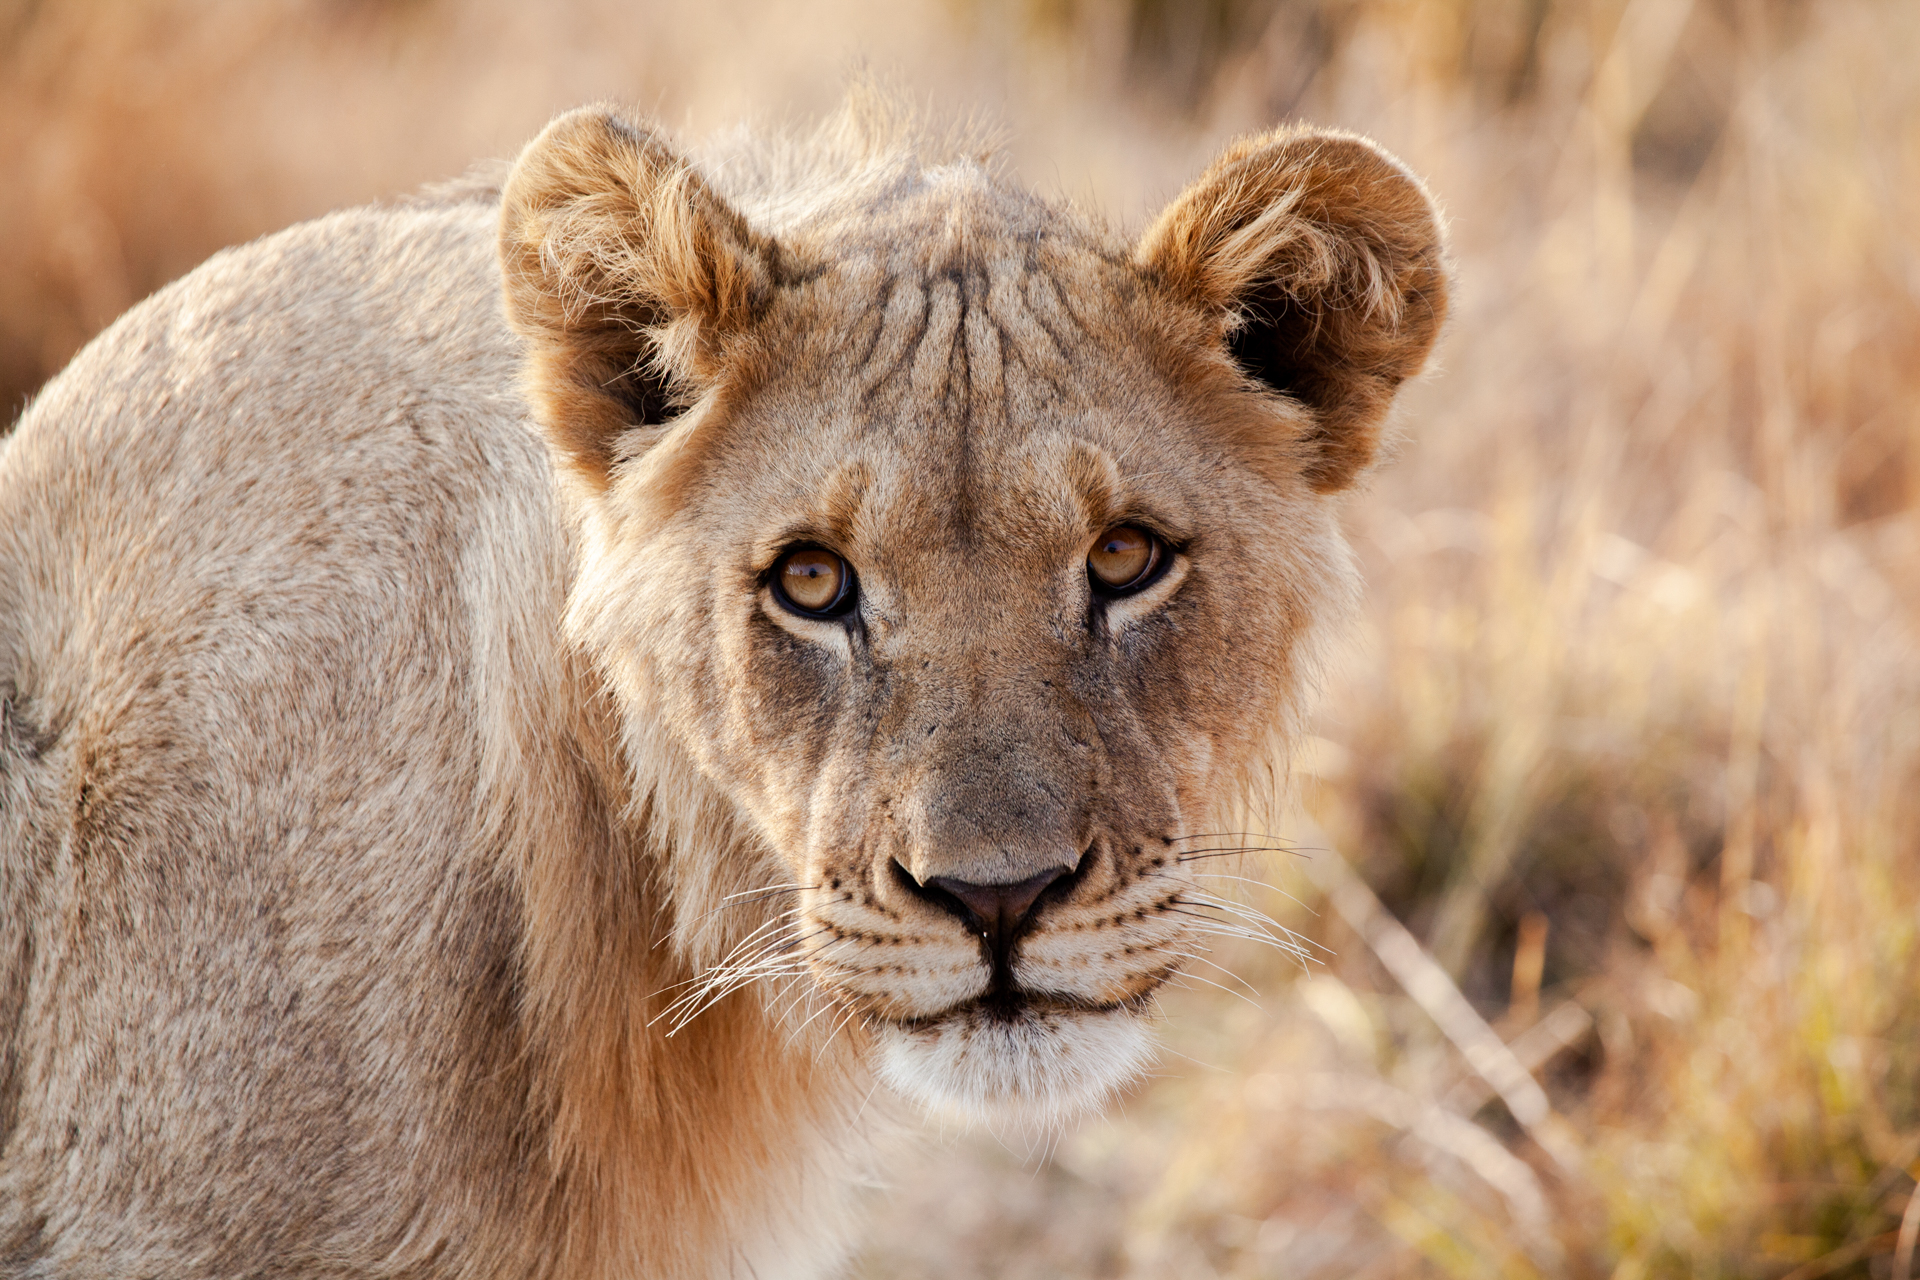 IN MY ELEMENT: On our game drives we saw so many lions and I couldn't resist taking loads of photos of them.